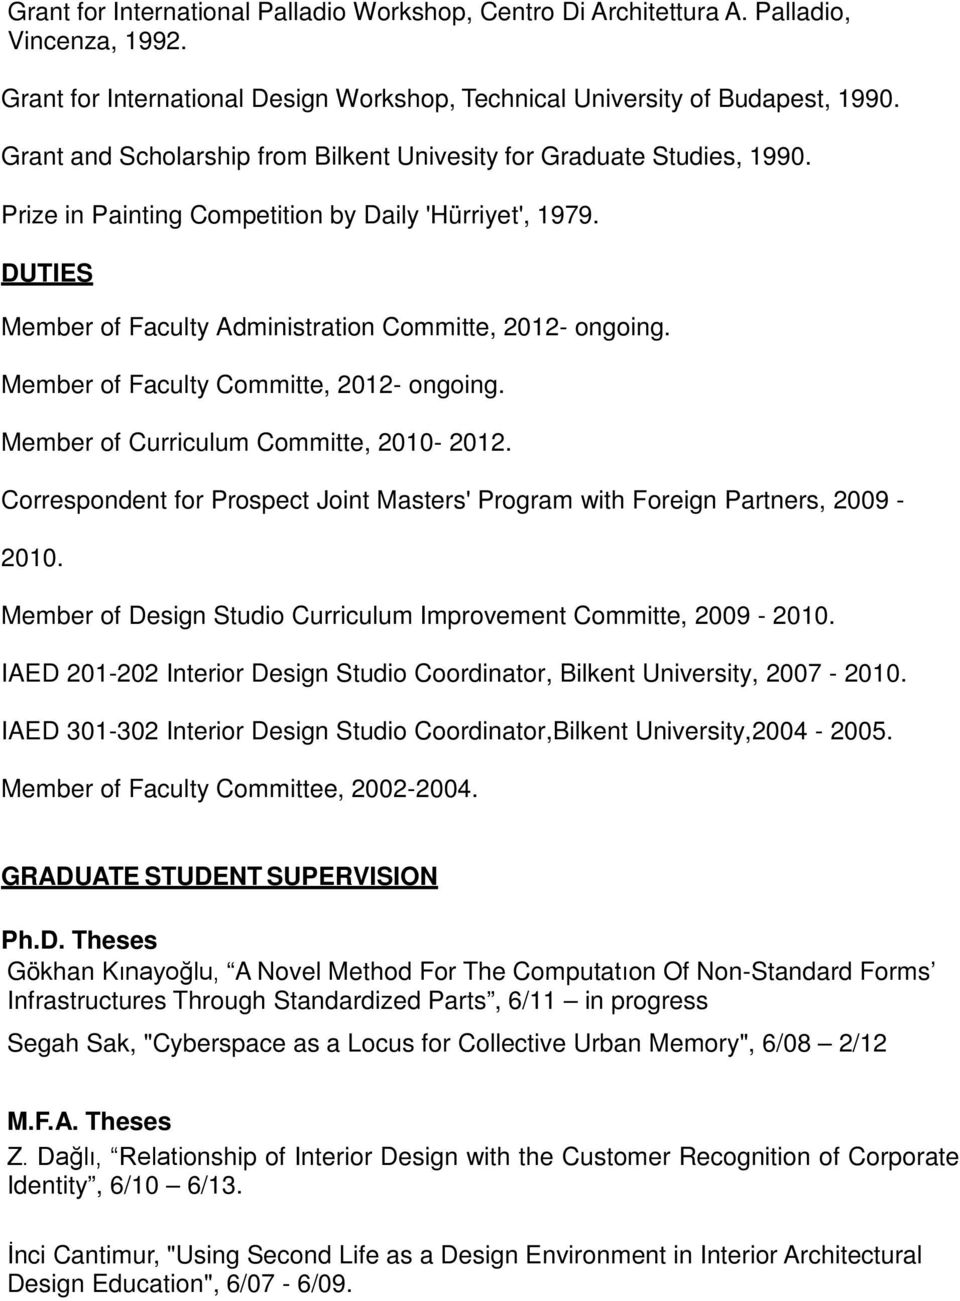 Member of Faculty Committe, 2012- ongoing. Member of Curriculum Committe, 2010-2012. Correspondent for Prospect Joint Masters' Program with Foreign Partners, 2009-2010.